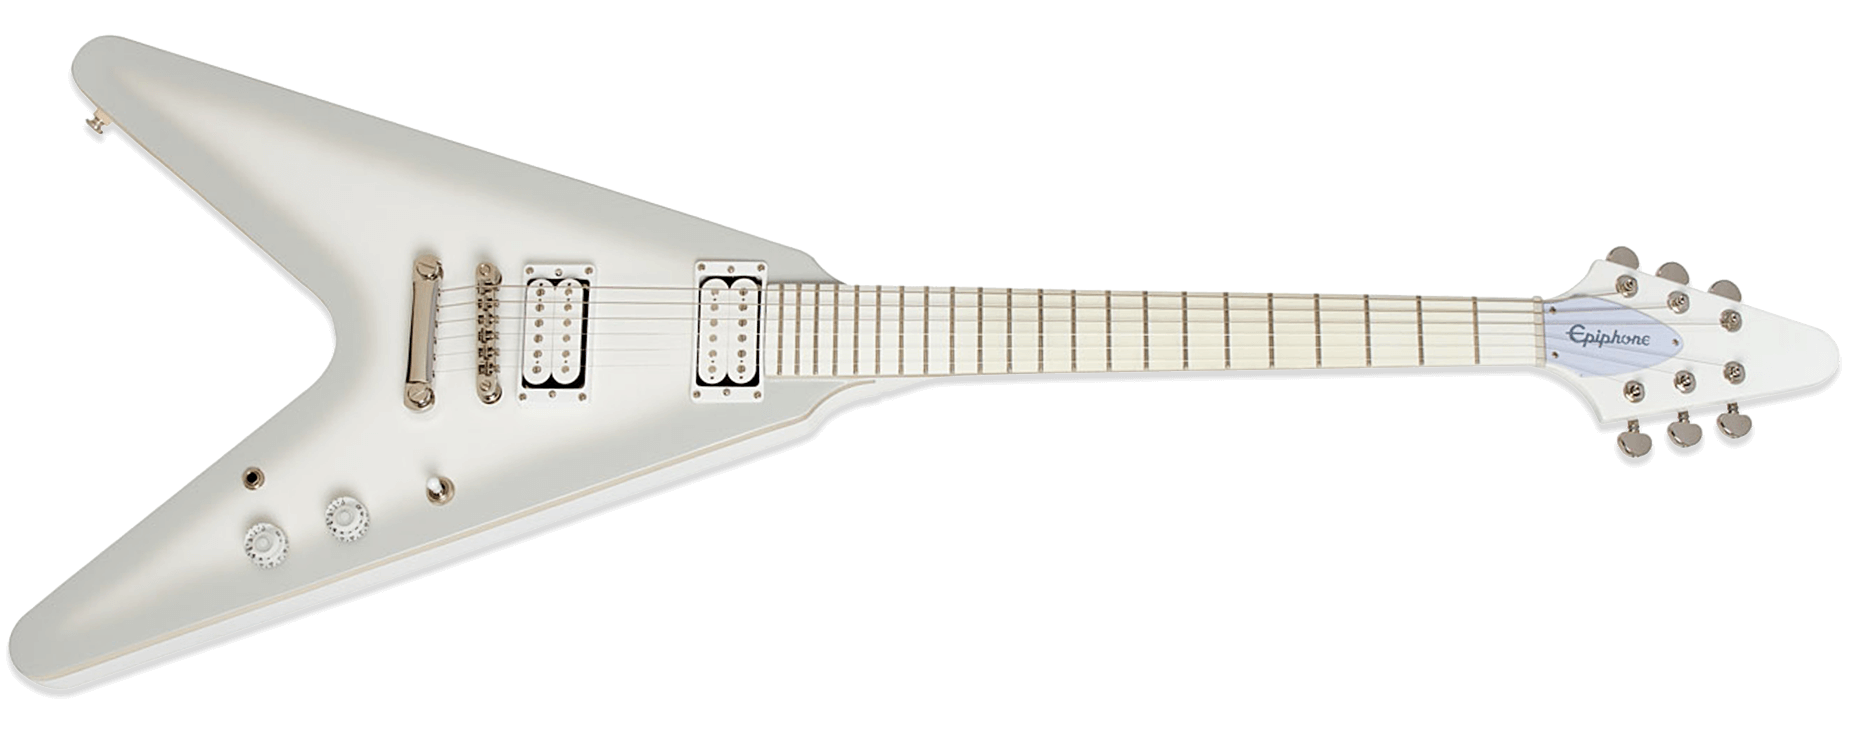 Epiphone Brendon Small Flying V Snow Falcon